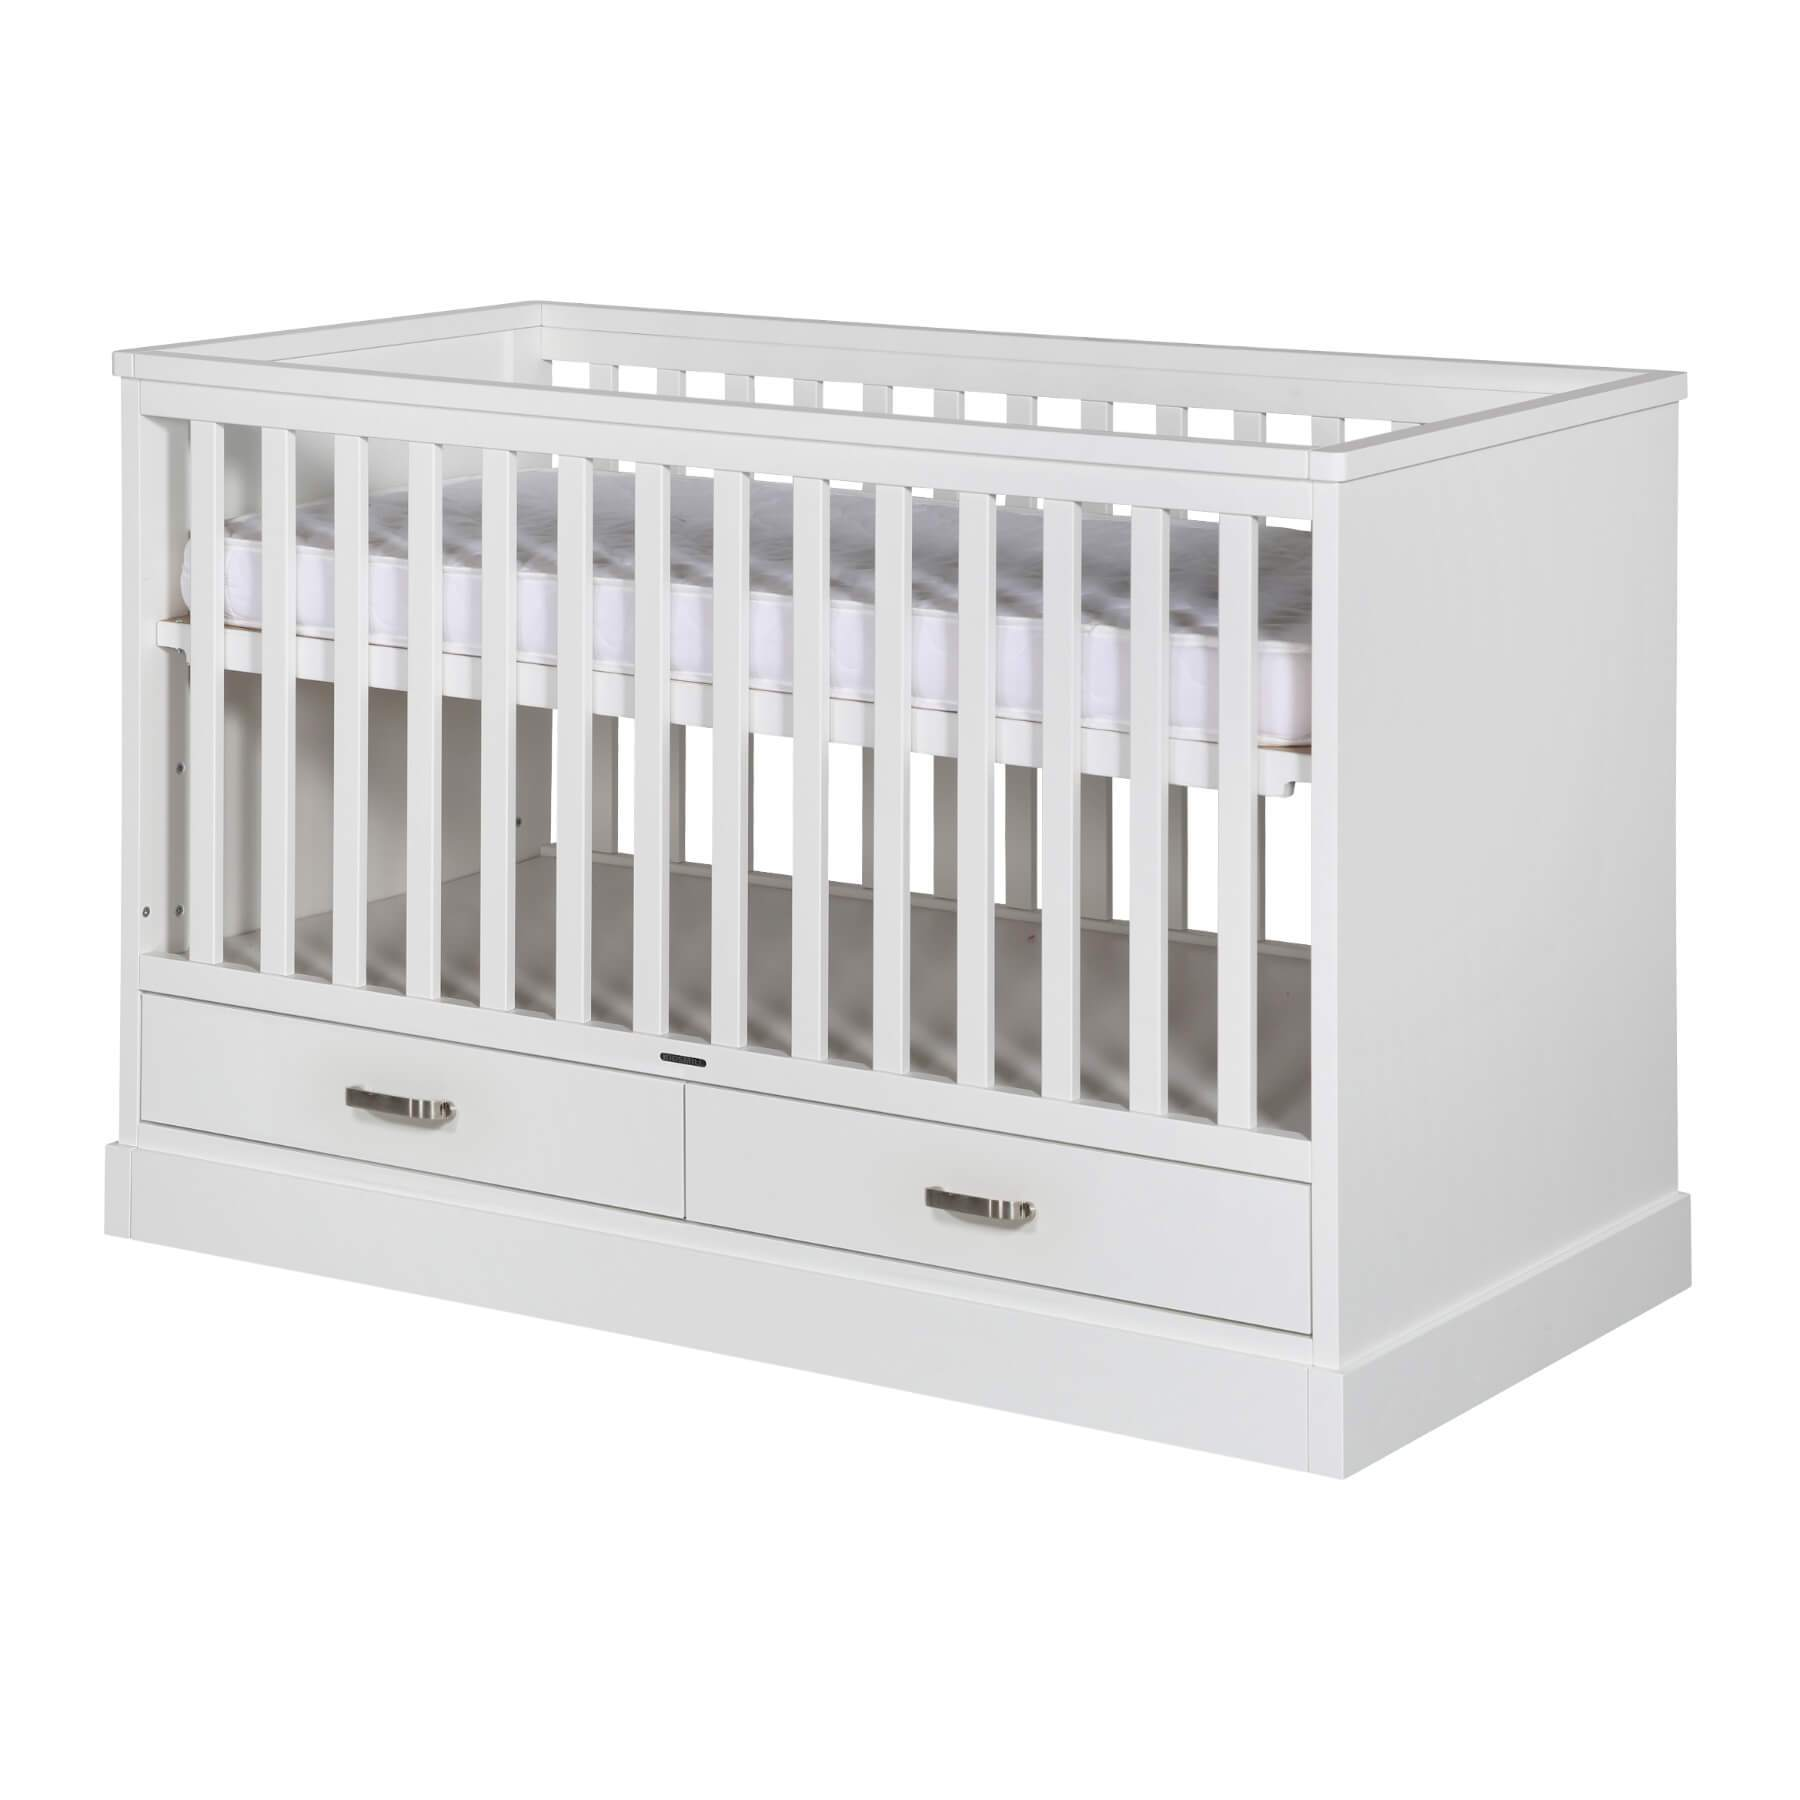 KIDSMILL Newport II Cot Bed - White